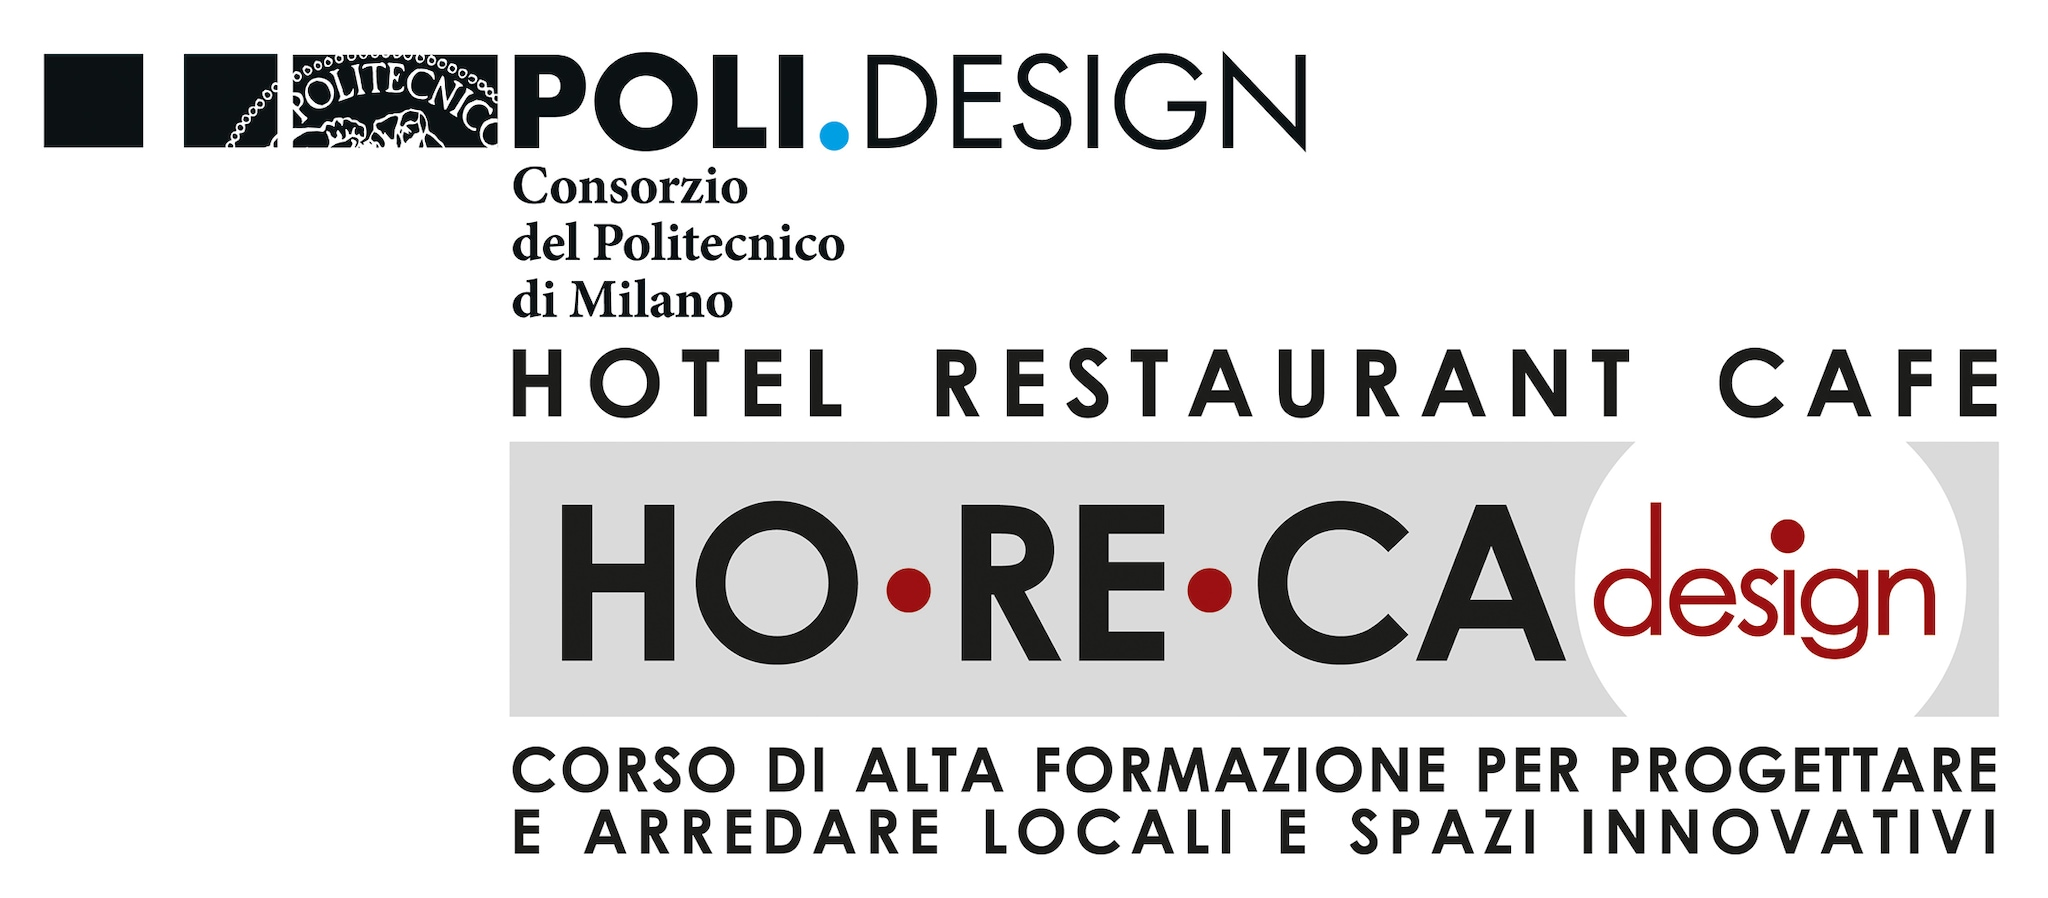 New HoReCa Design course at POLI.design